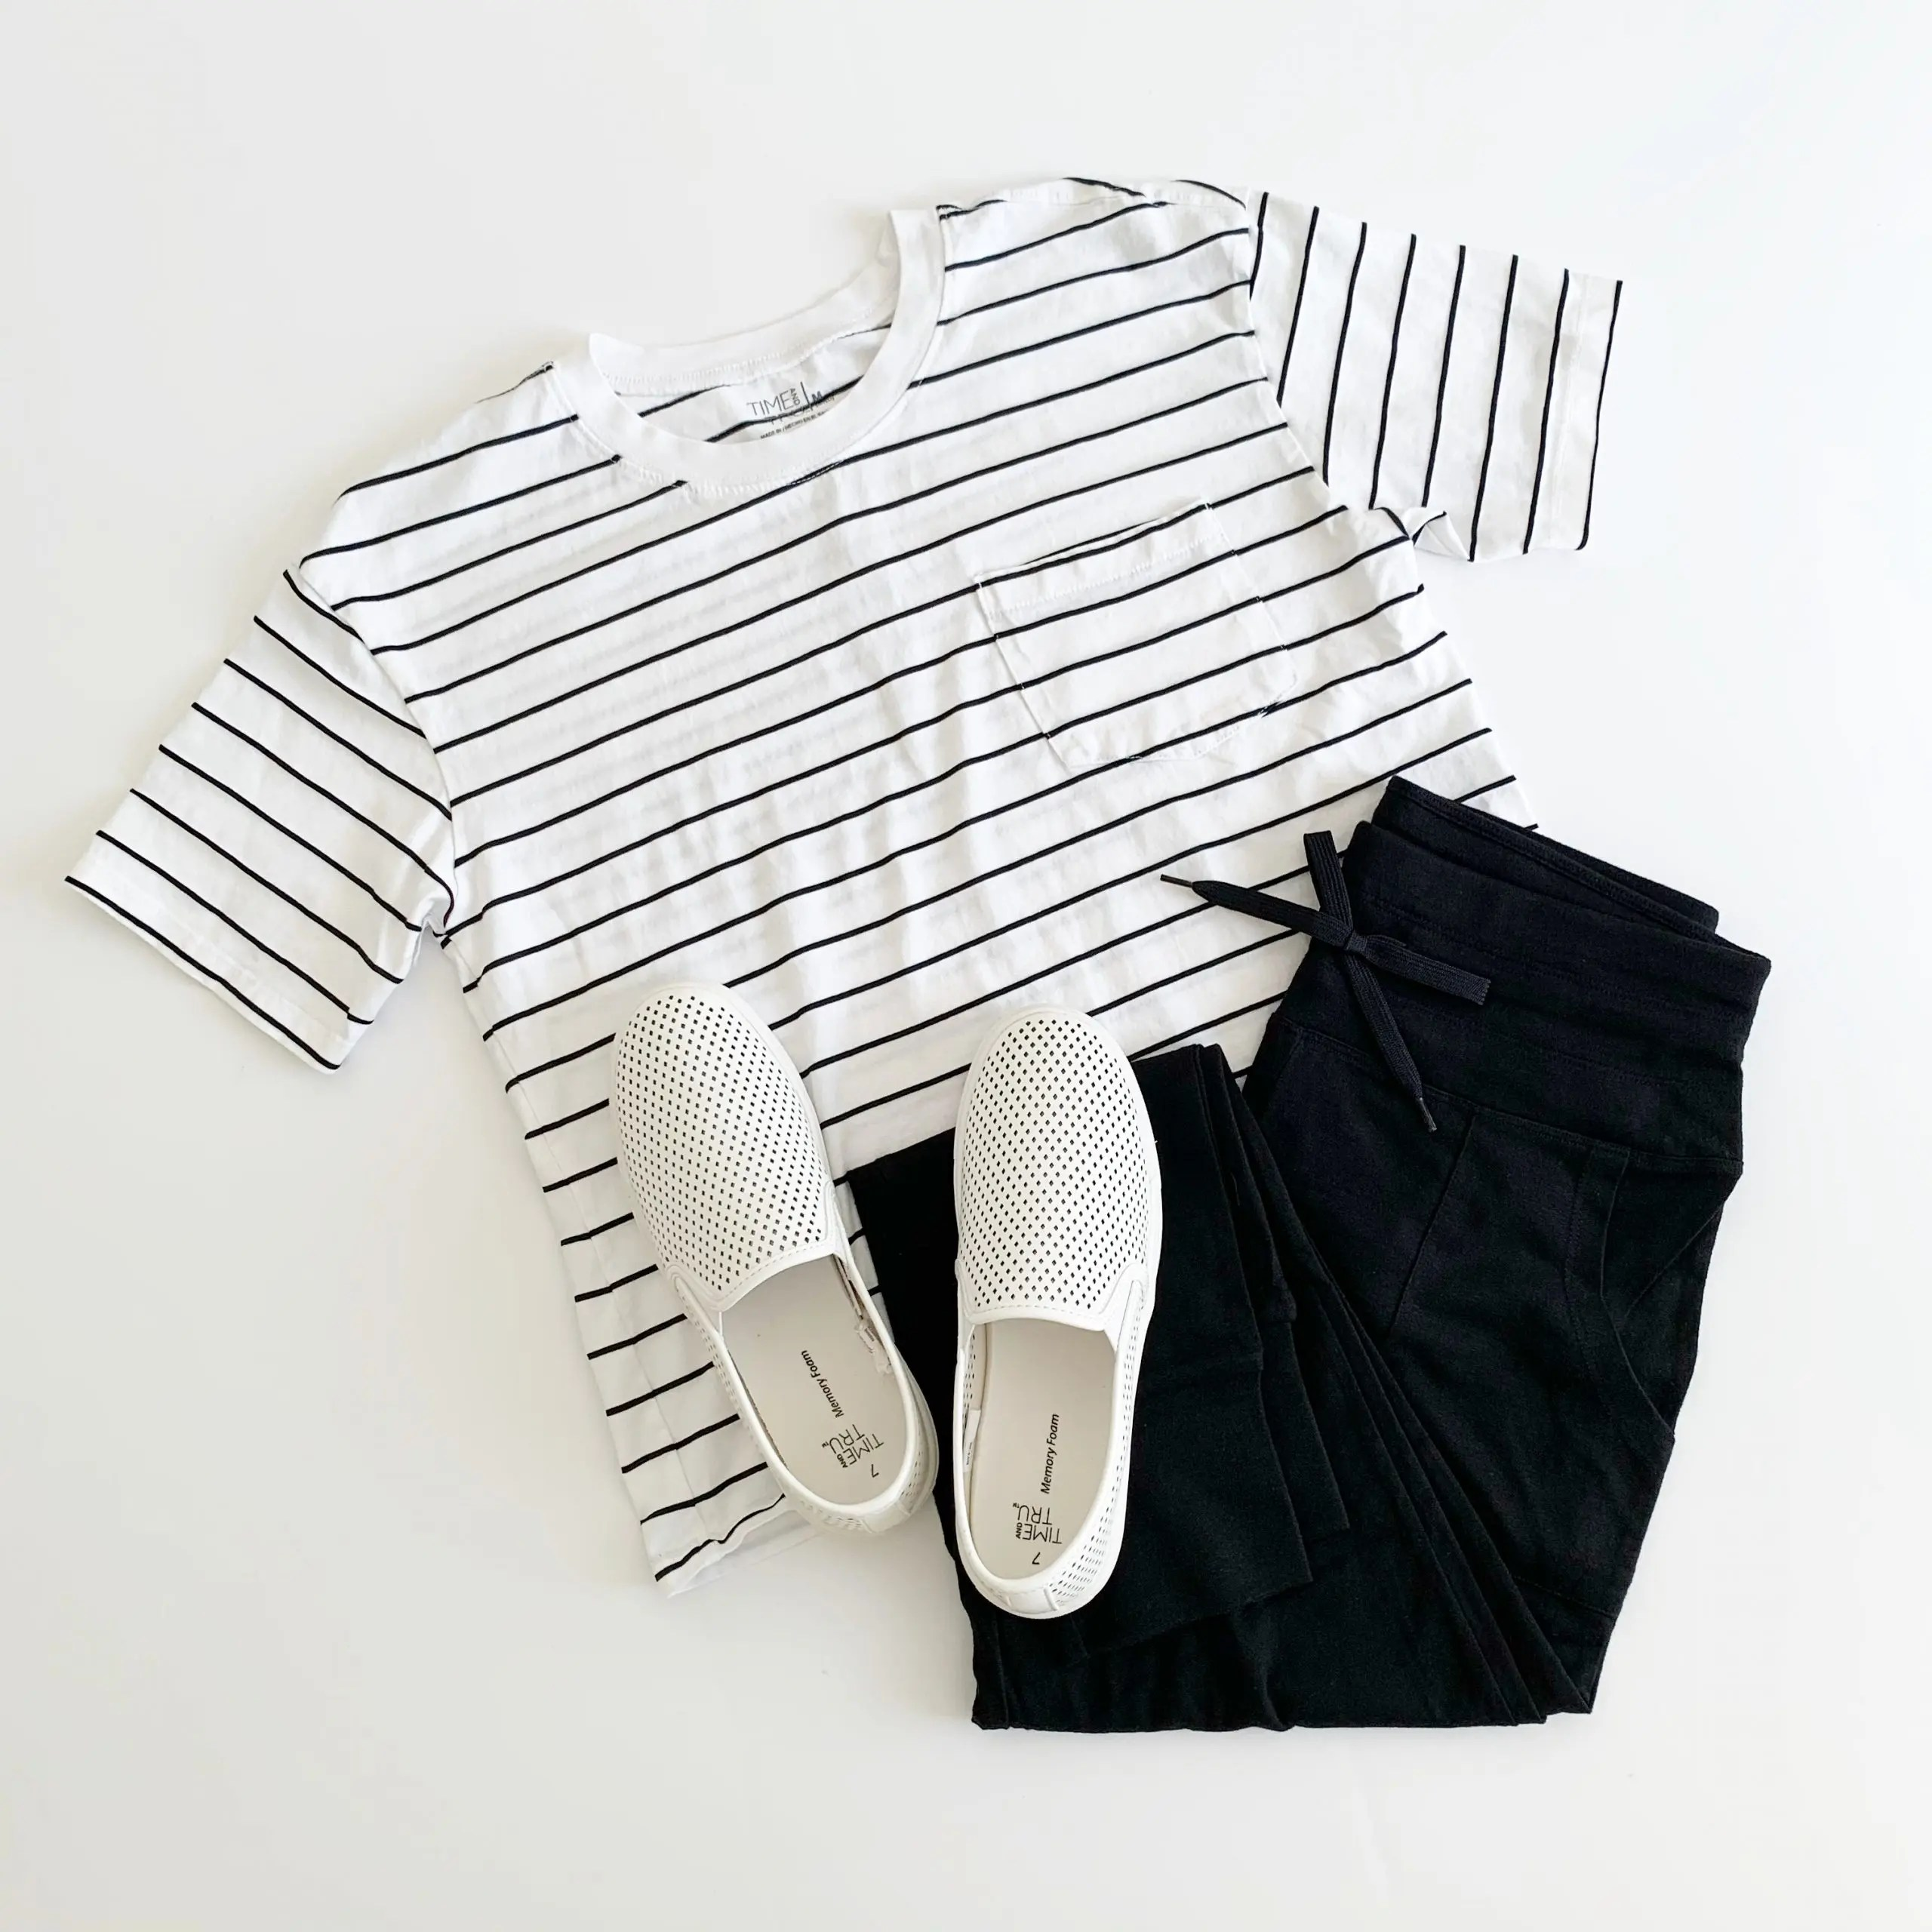 athletic works joggers, time and tru boyfriend tee and slip-on shoes